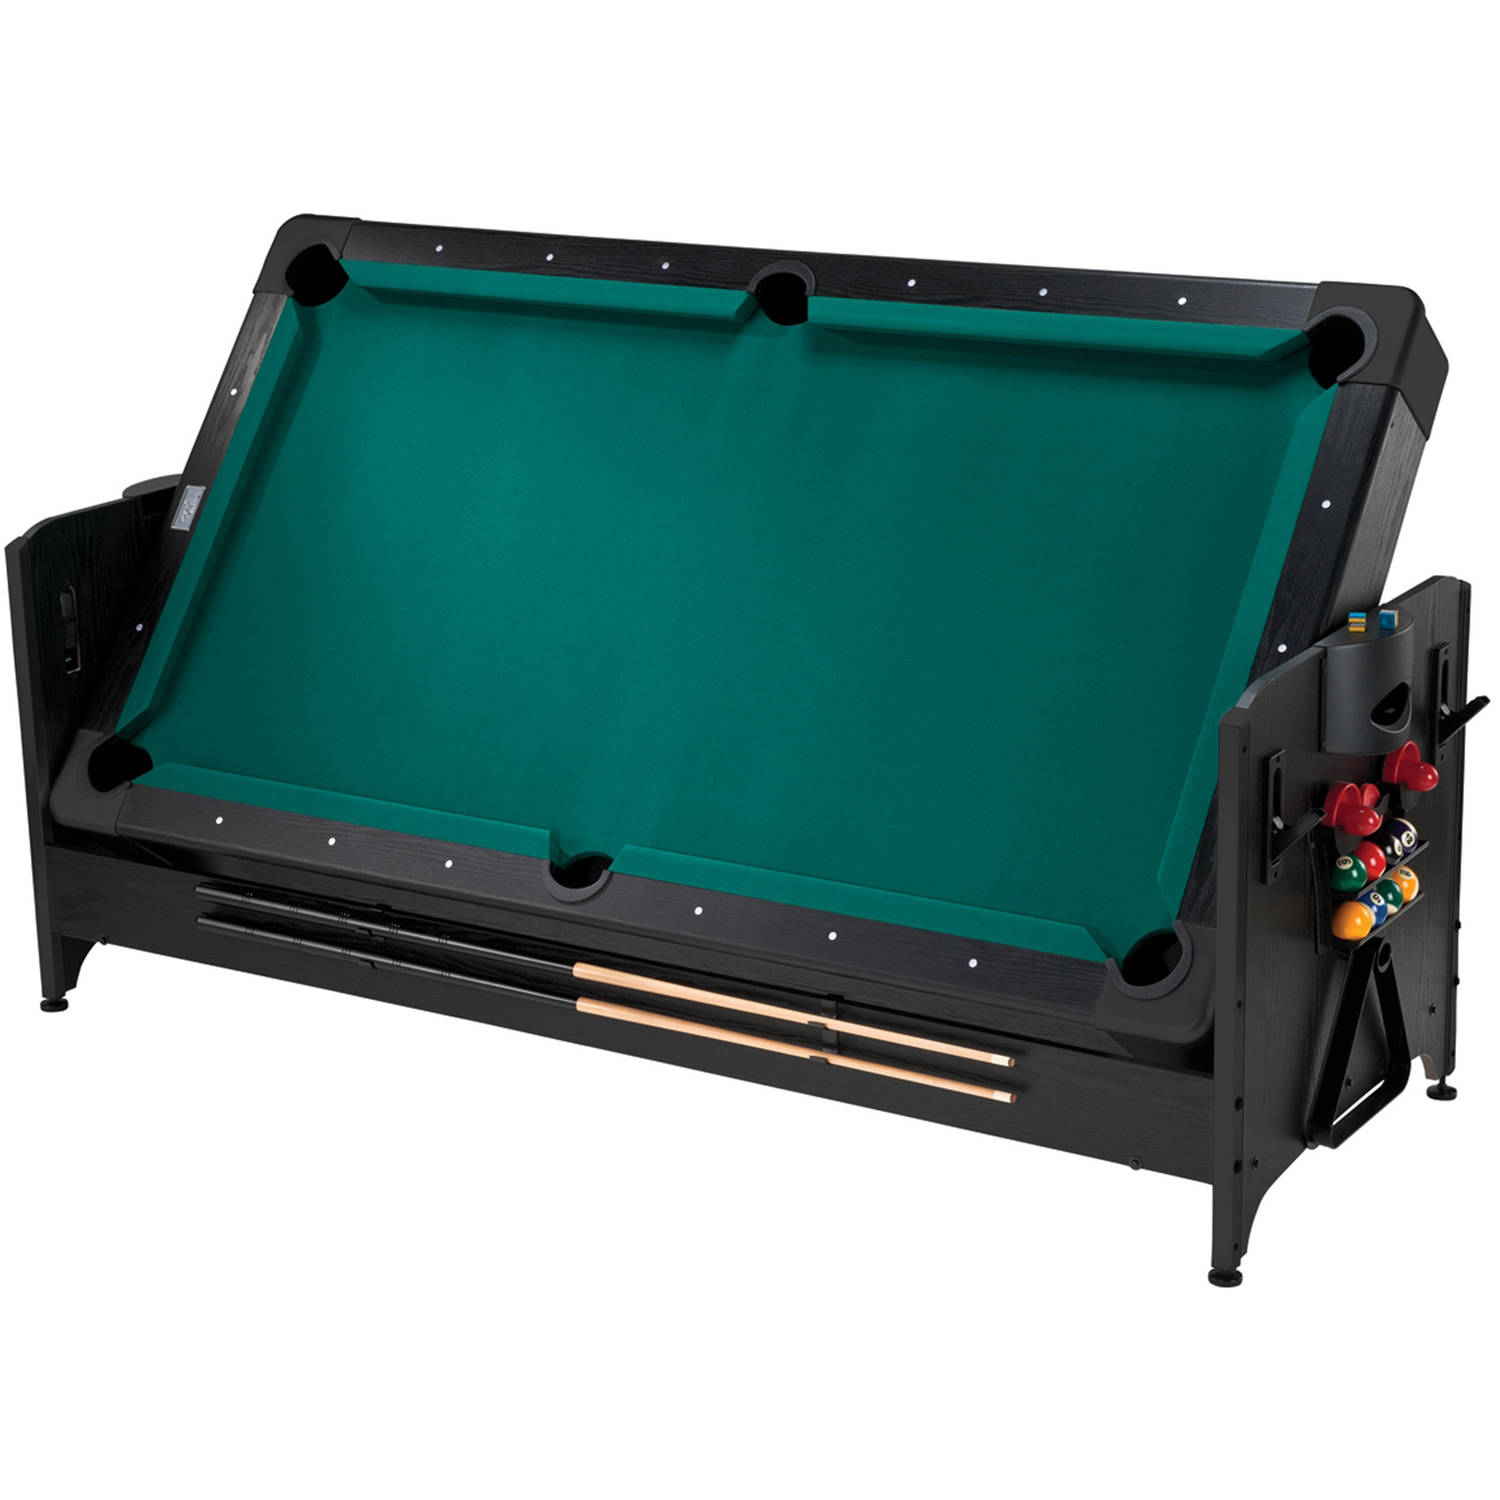 Attractive Fat Cat Pockey 7u0027 3 In 1 Game Table   Walmart.com